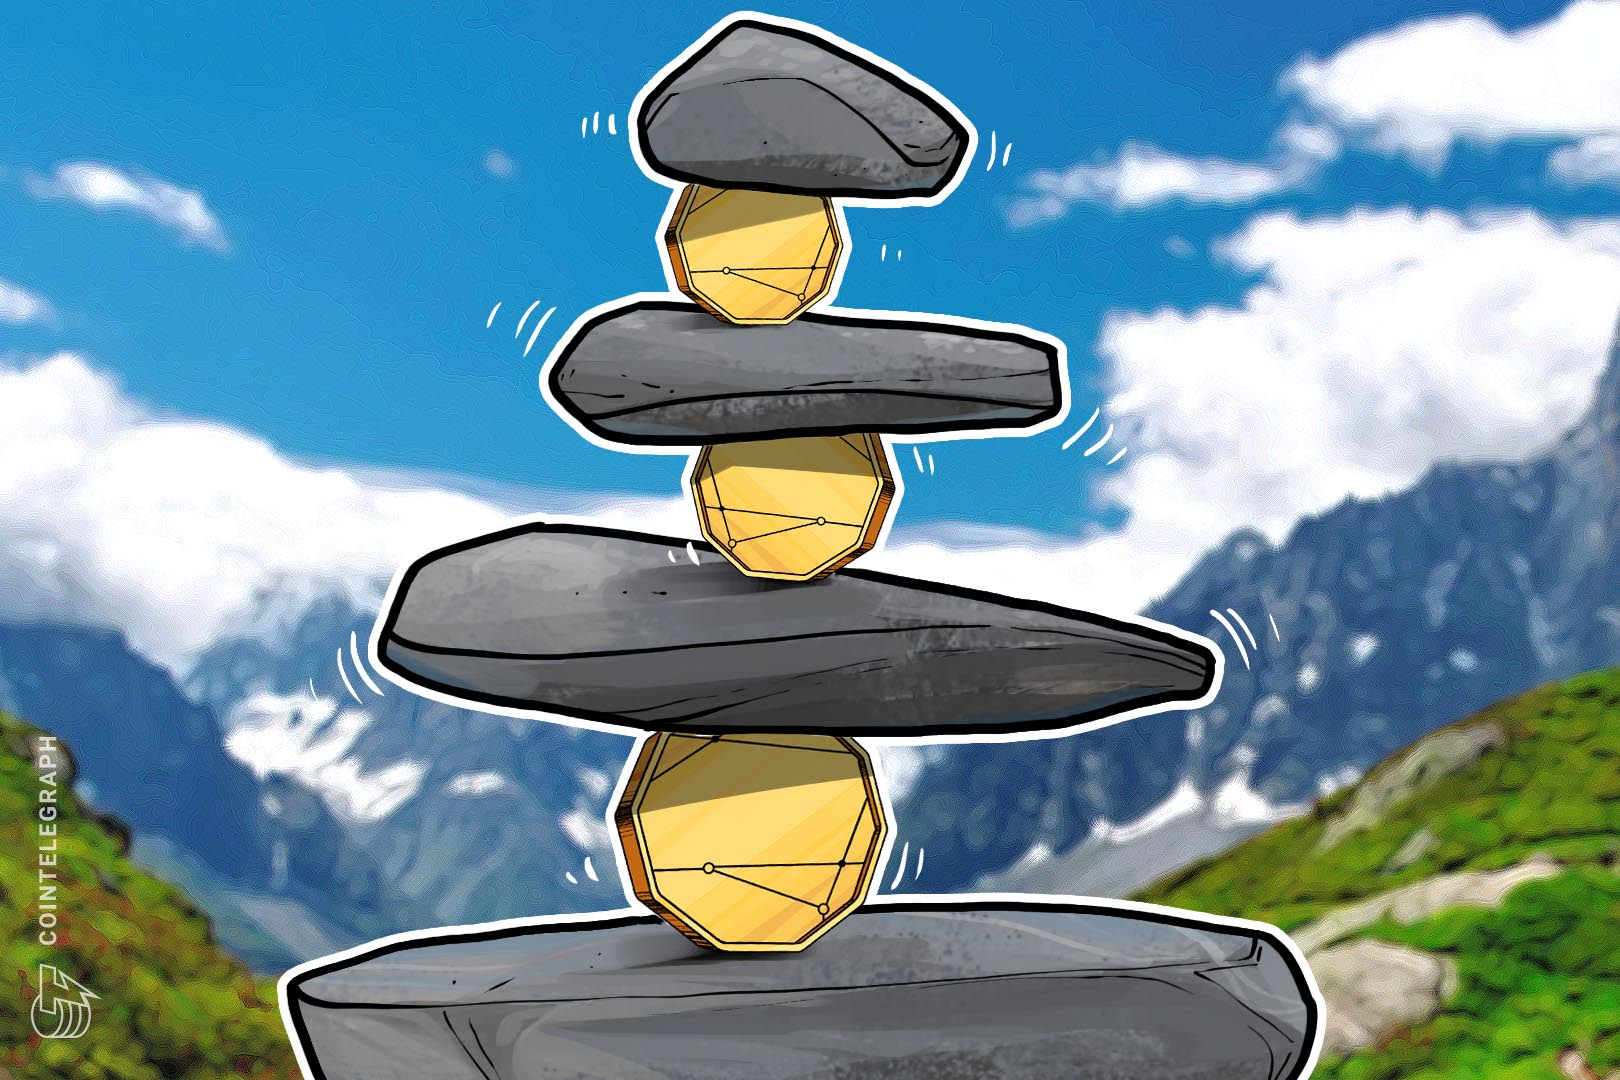 Analyst: Half of Crypto's Top 10 Assets 'Absolutely Do Not Deserve' to Be There